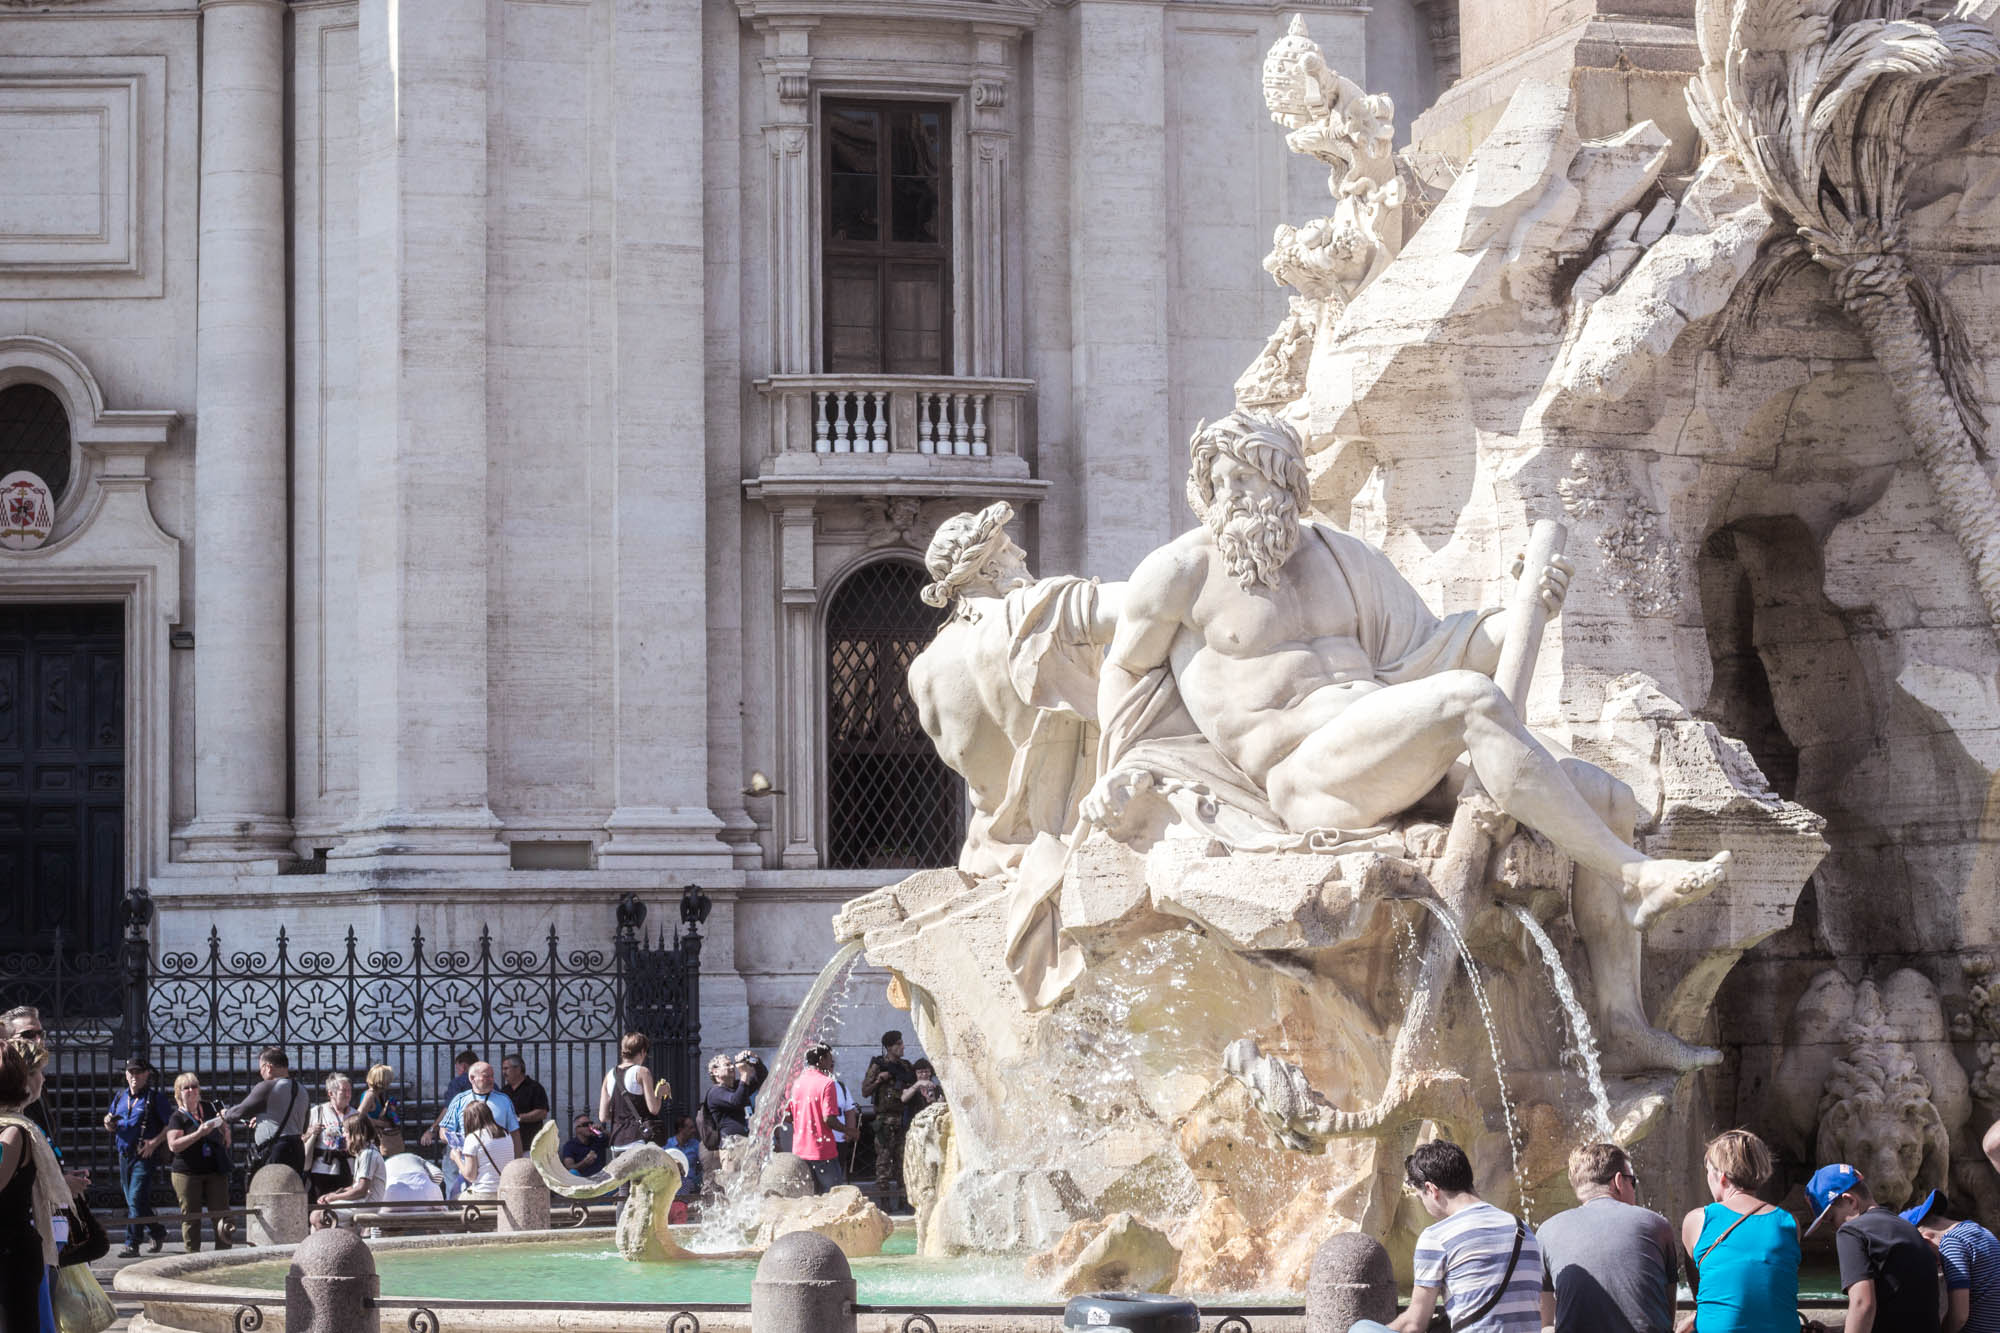 Bernini's Fountain of the Four Rivers in Rome, Italy